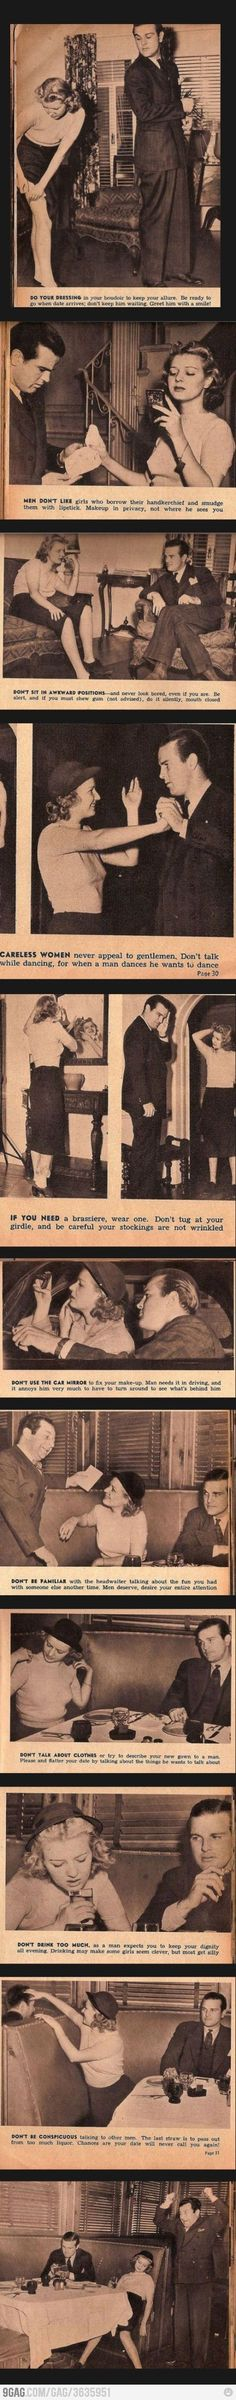 'Vintage' tips for women- wow, how times have changed!!!